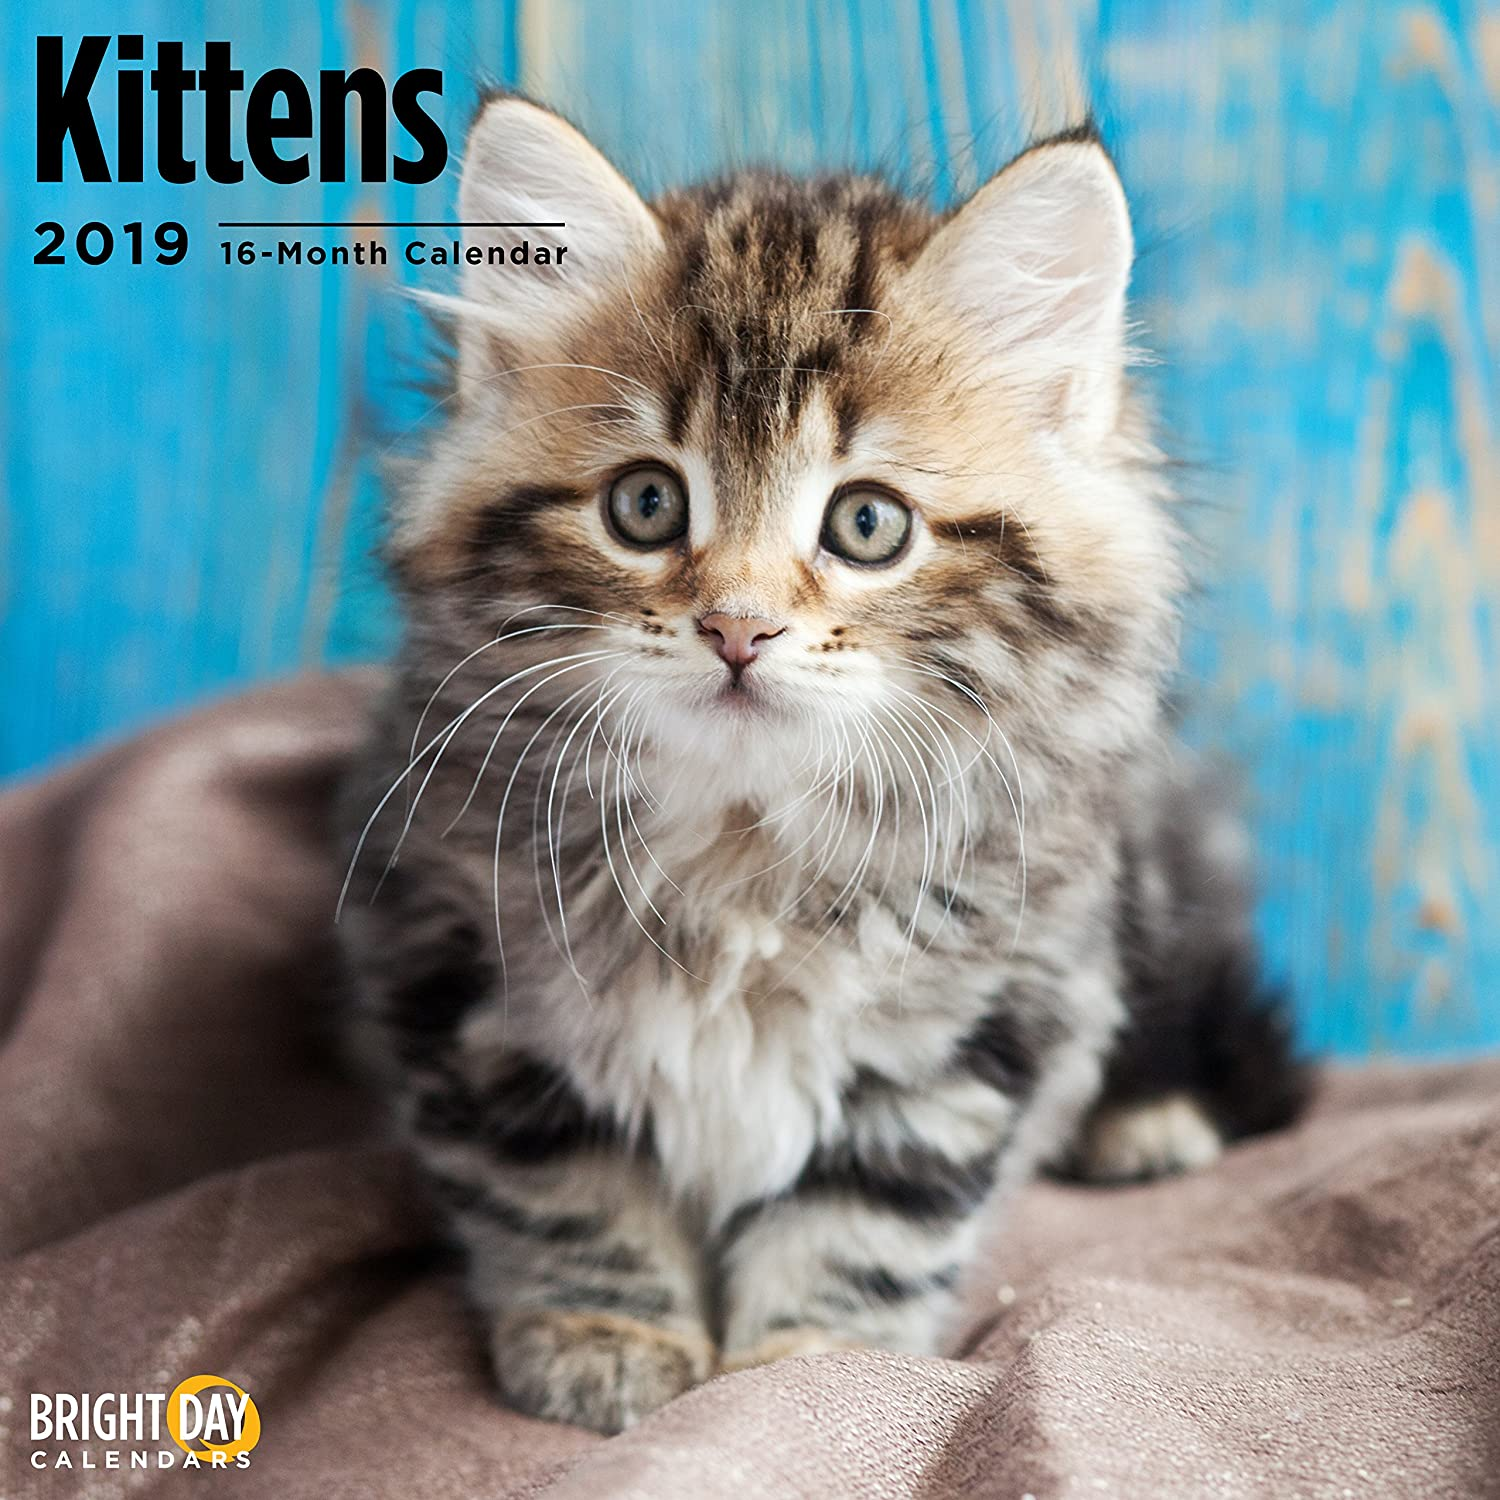 Kittens 2019 16 Month Wall Calendar 12 x 12 Inches Bright Day Calendars